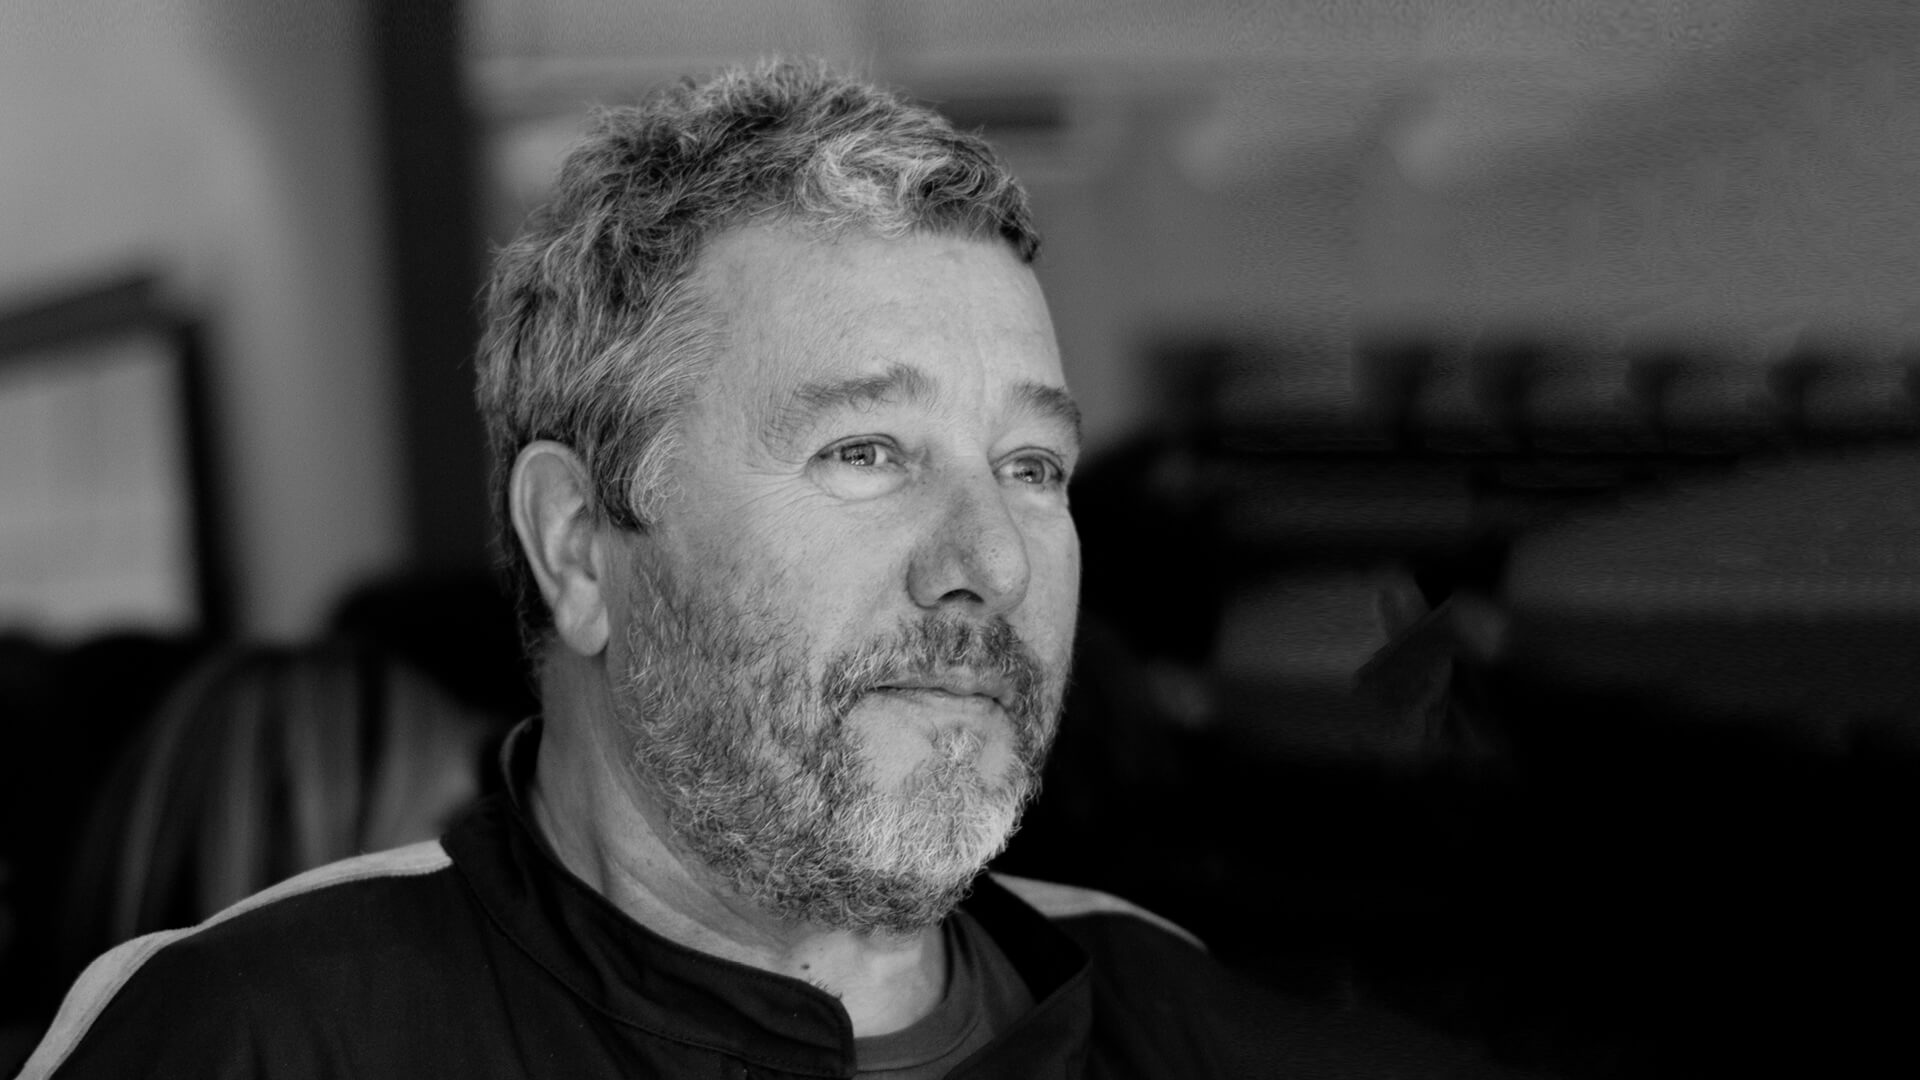 Philippe Starck | STIRwishes | STIRworld